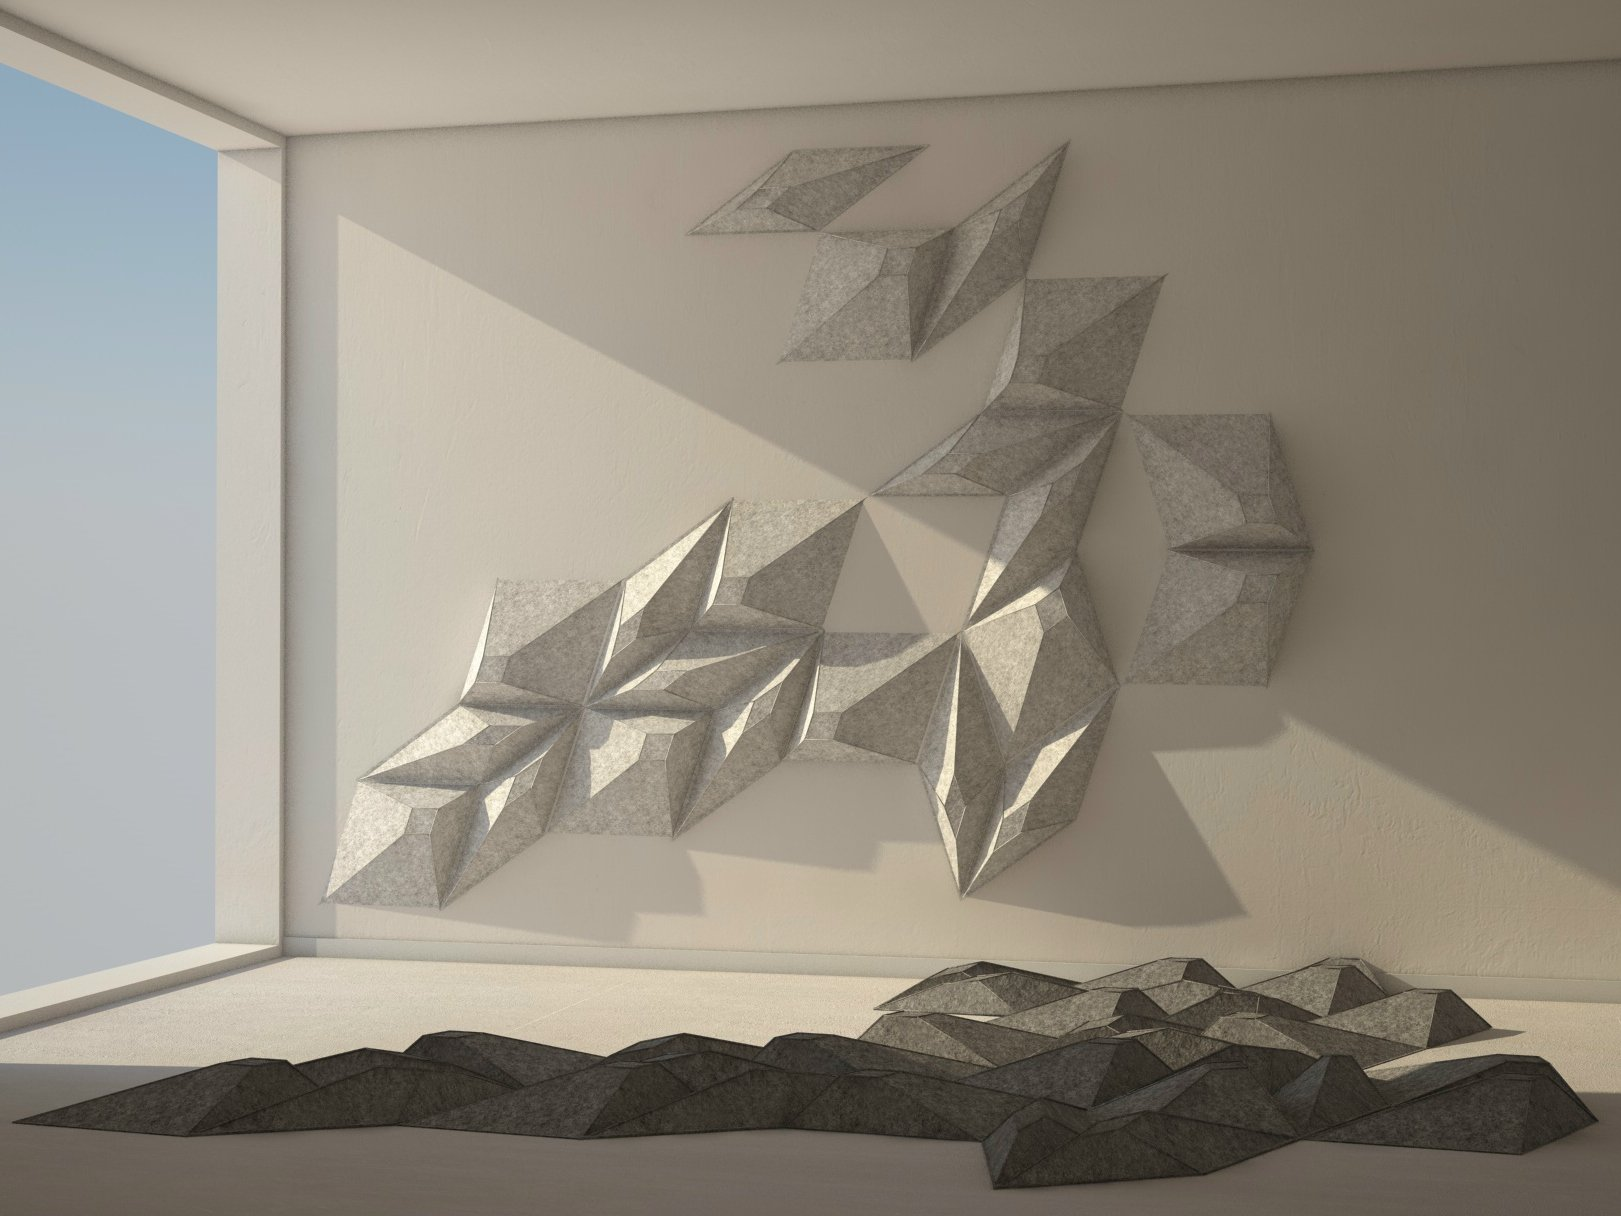 Les angles decorative acoustical panels by smarin - Decorative acoustical wall panels ...